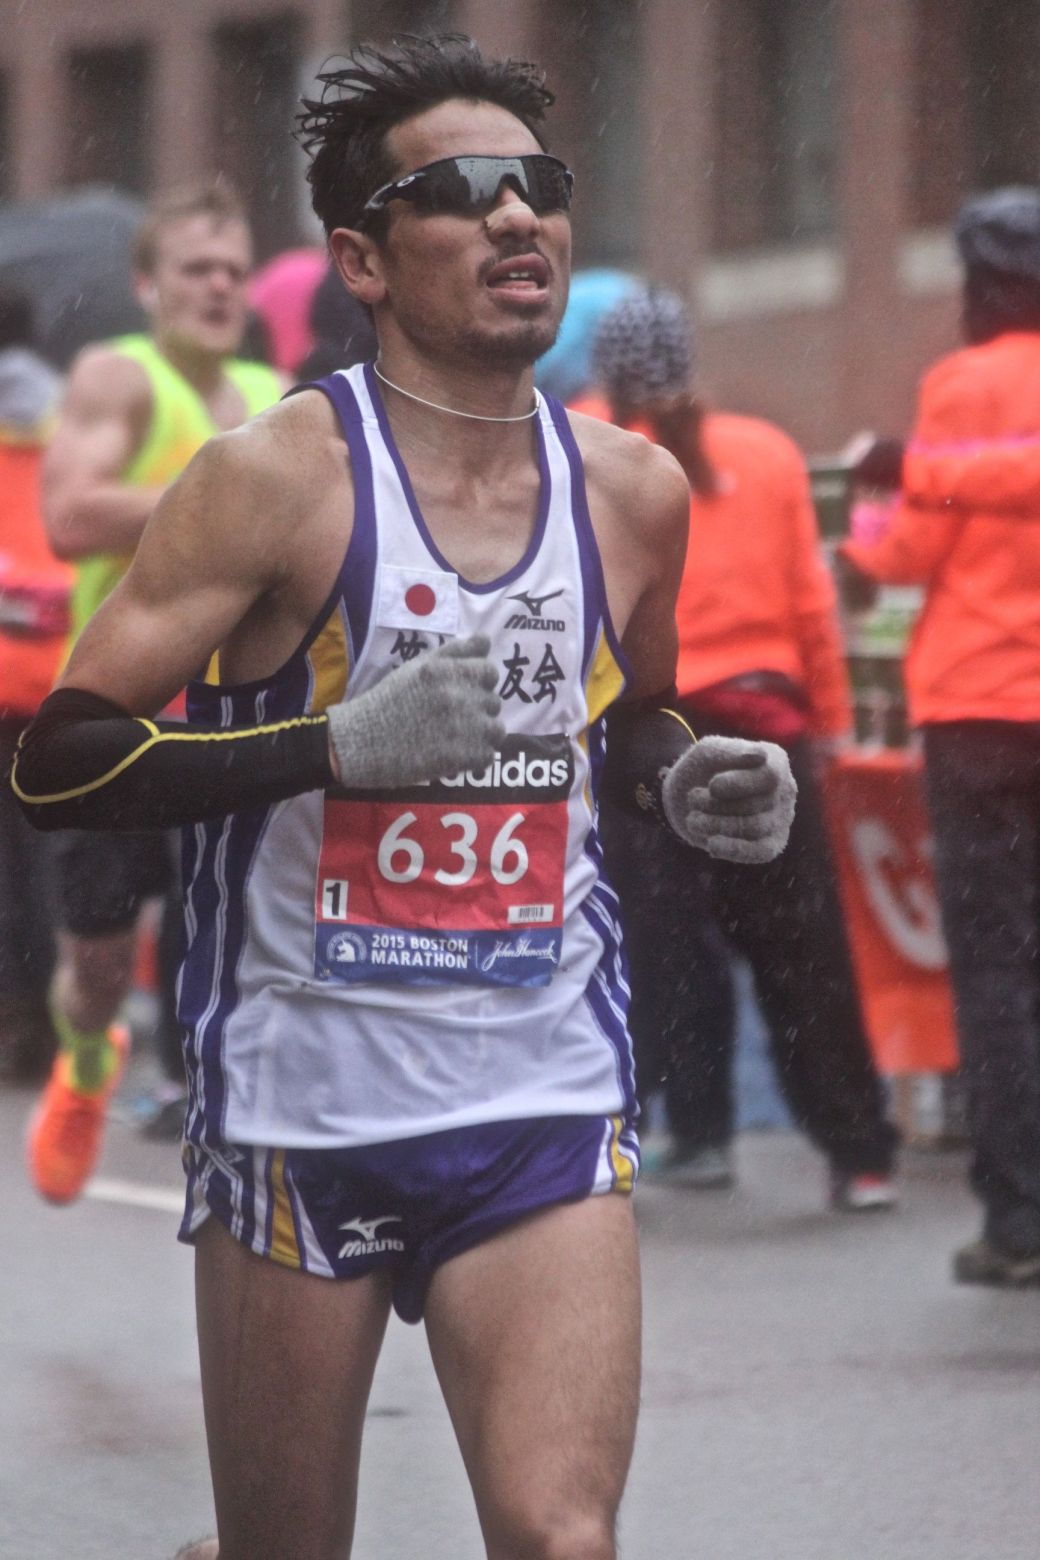 boston marathon april 20 2015 racer number 636